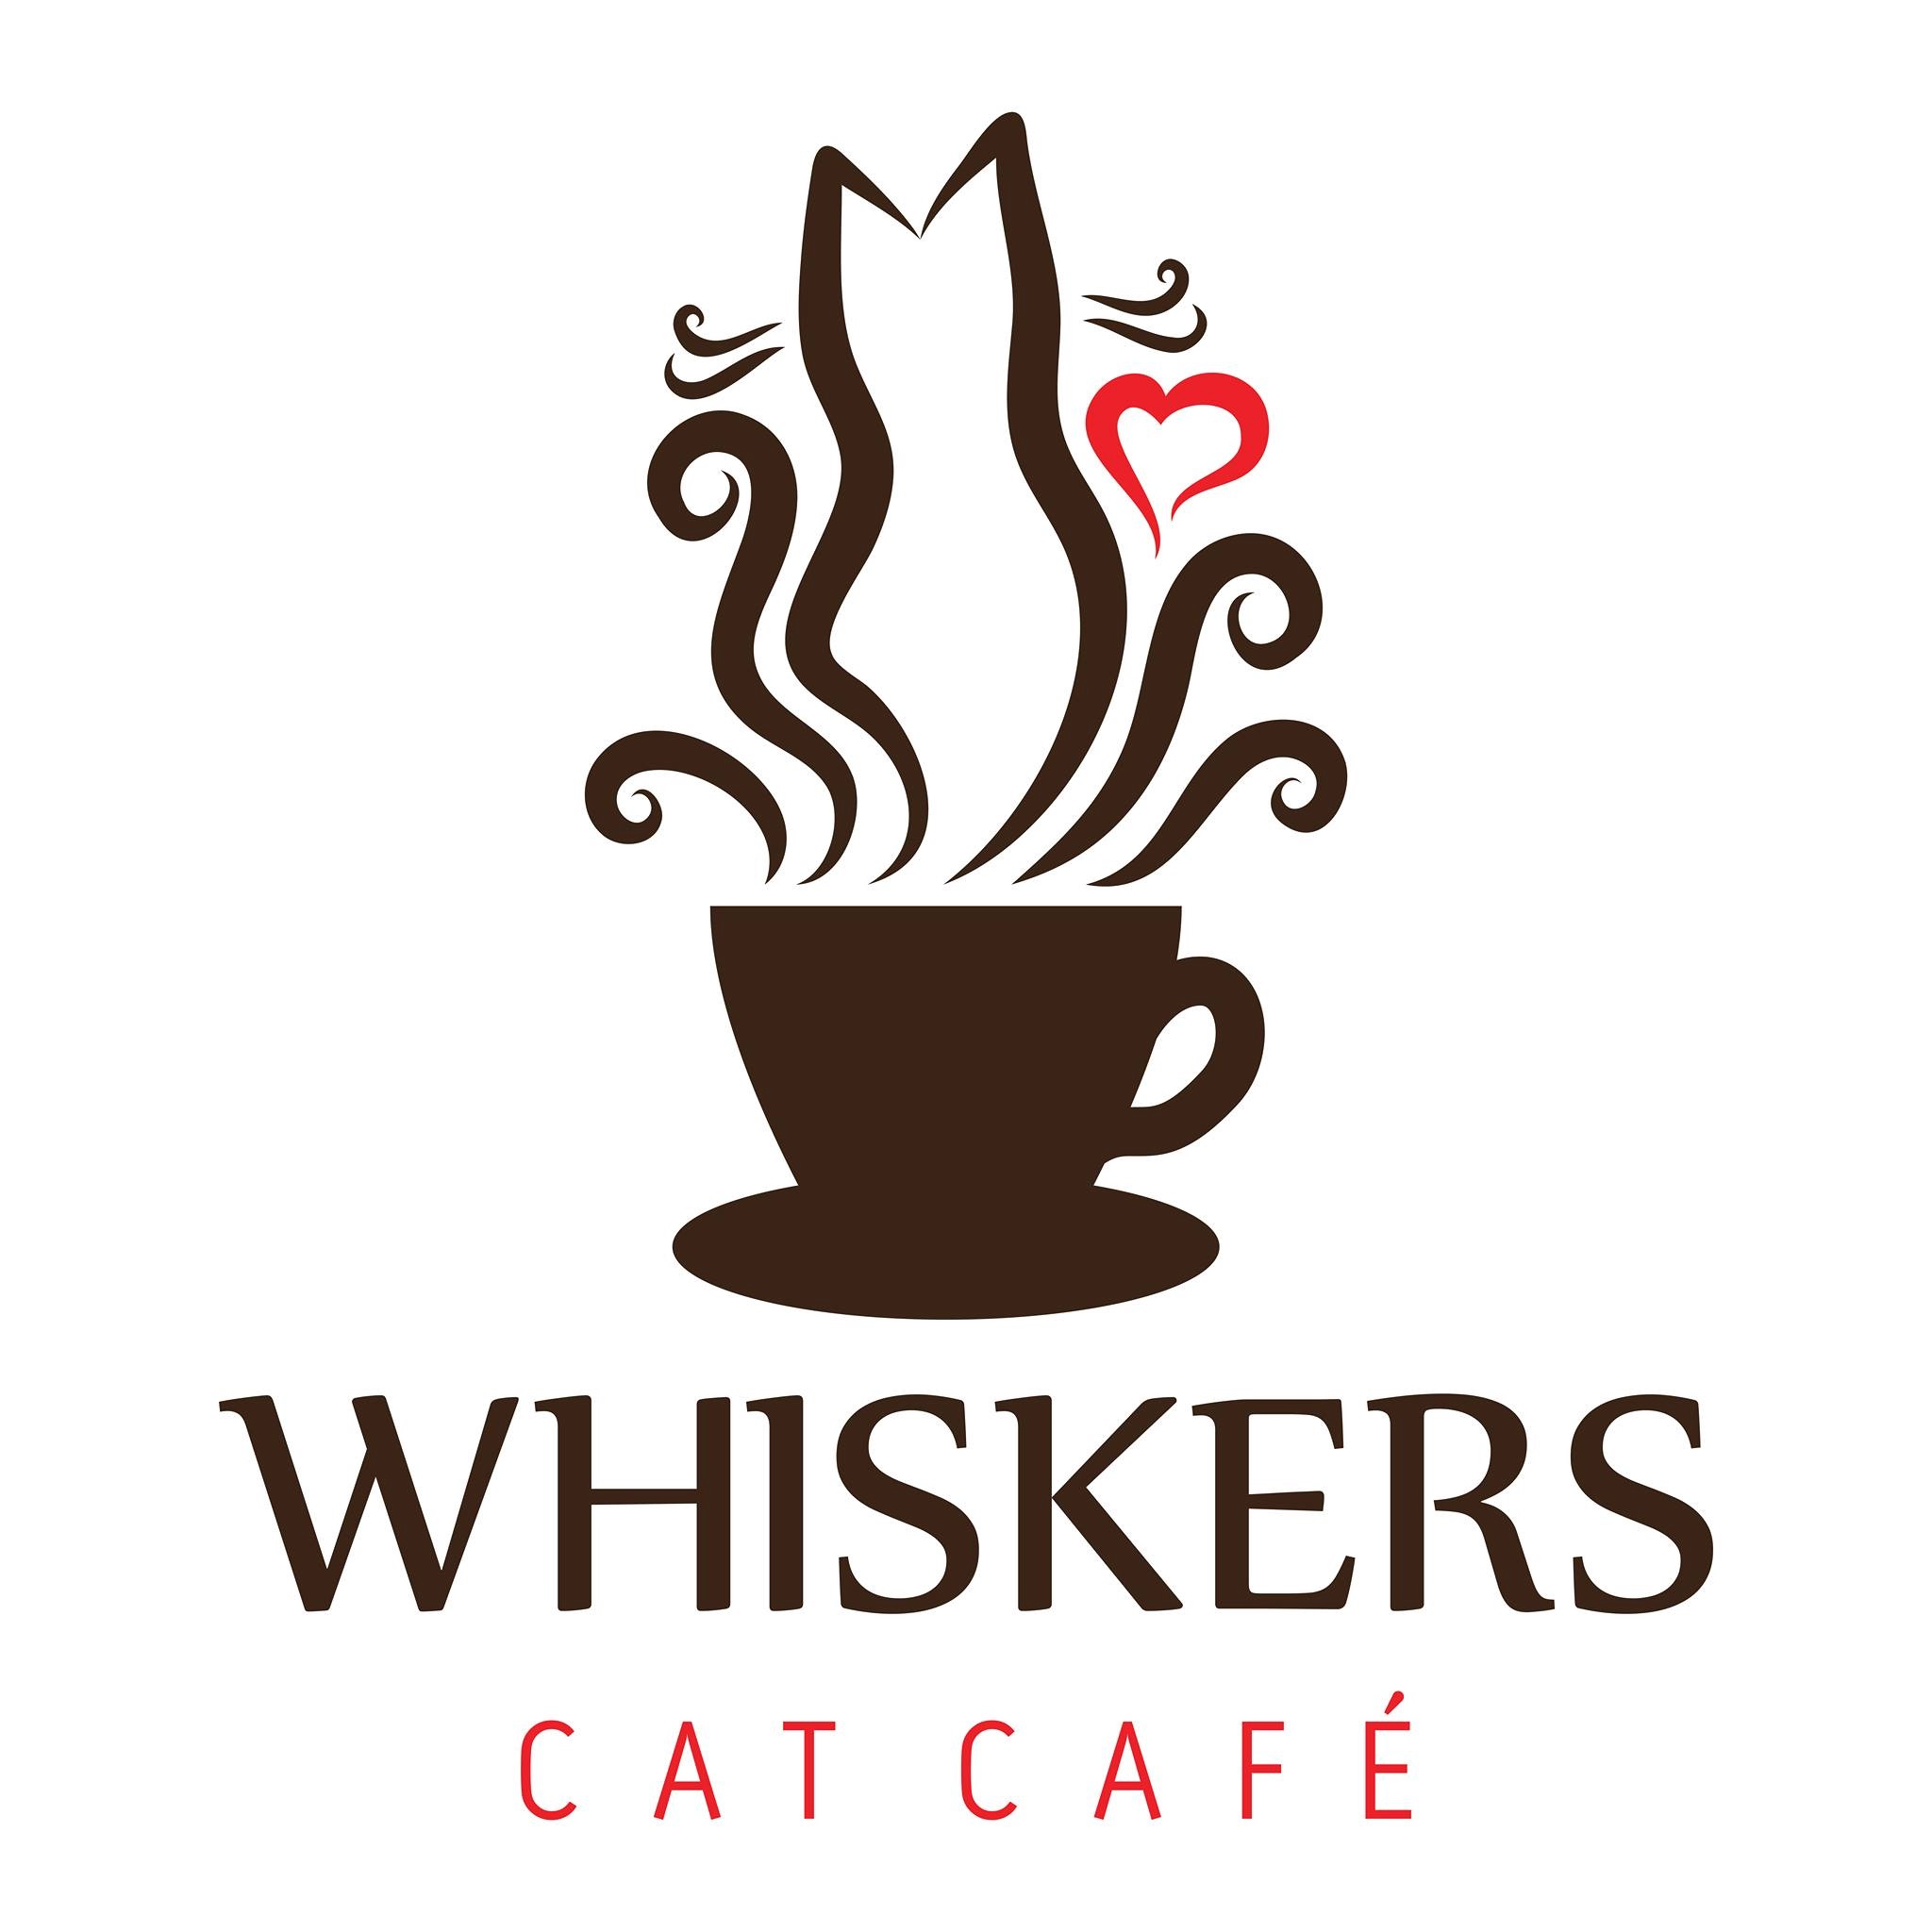 Whiskers cat cafe